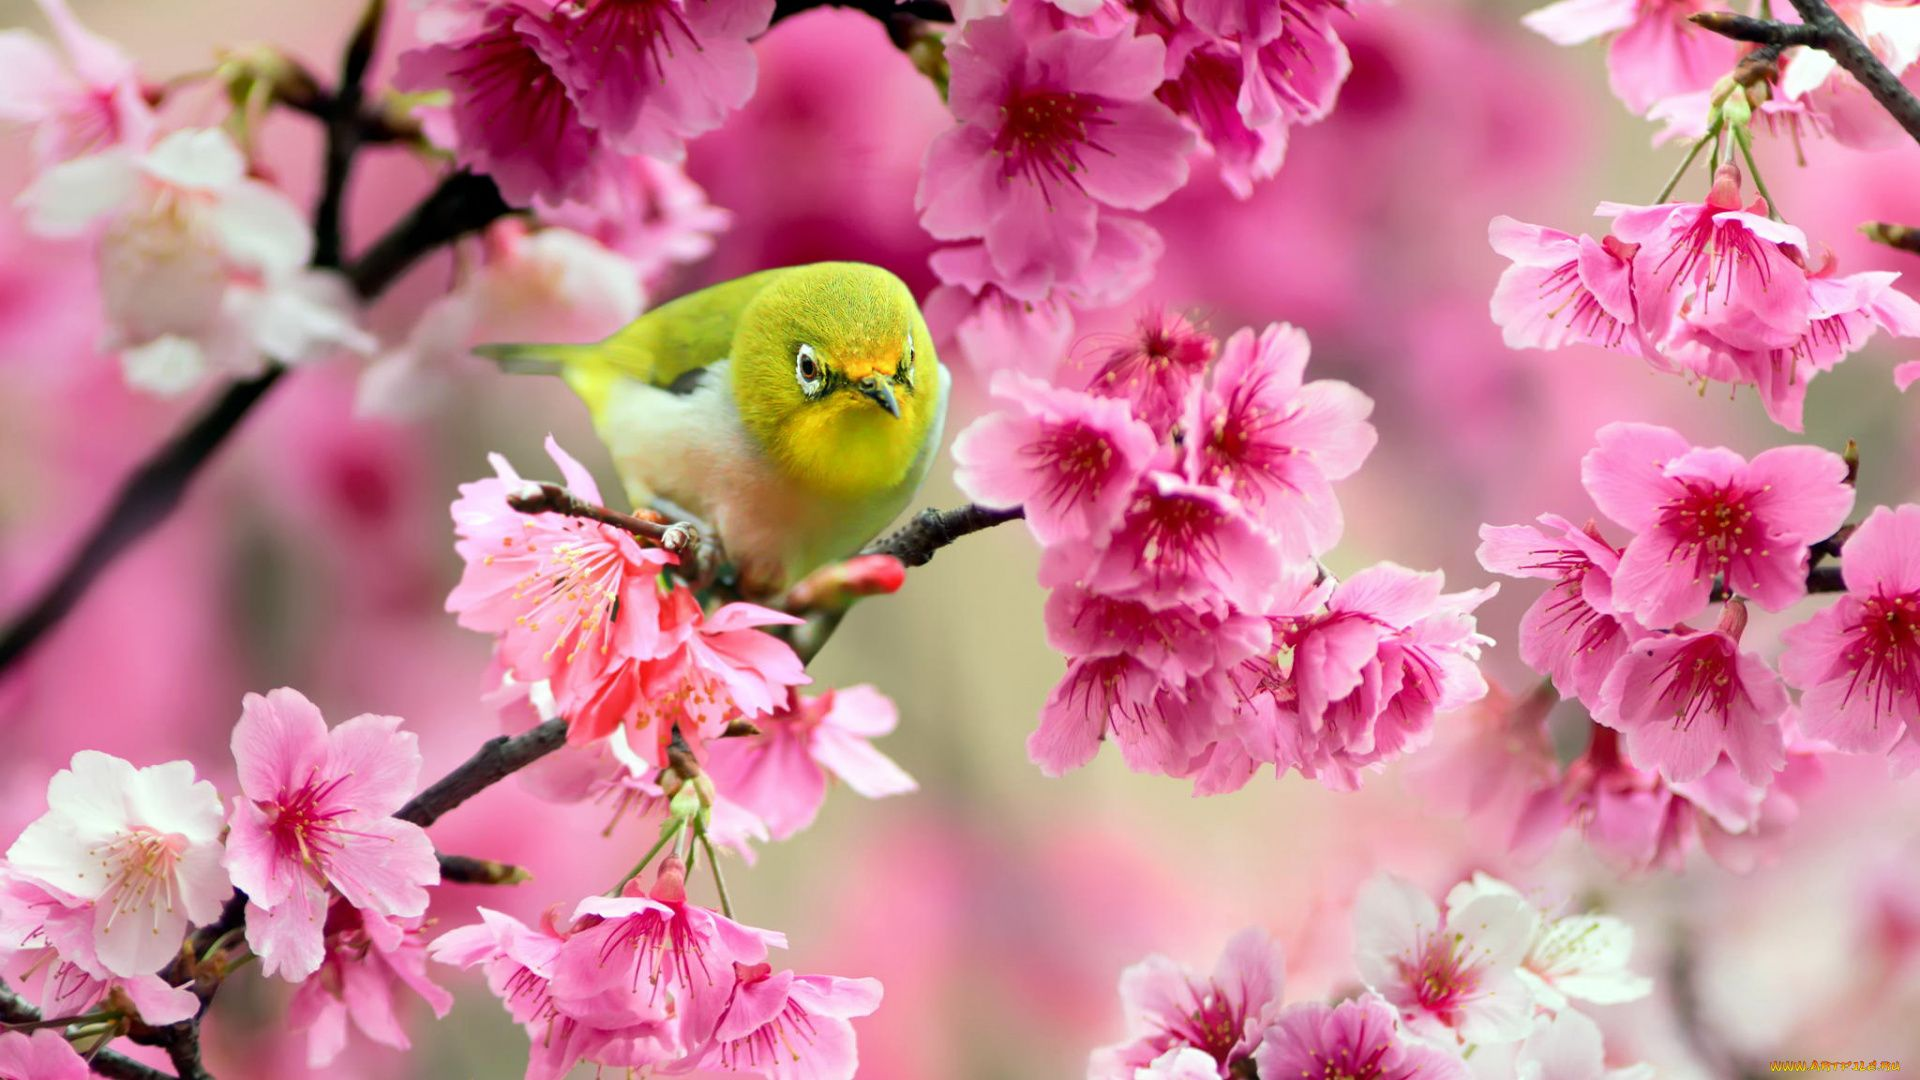 Cute Spring wallpaper for pc